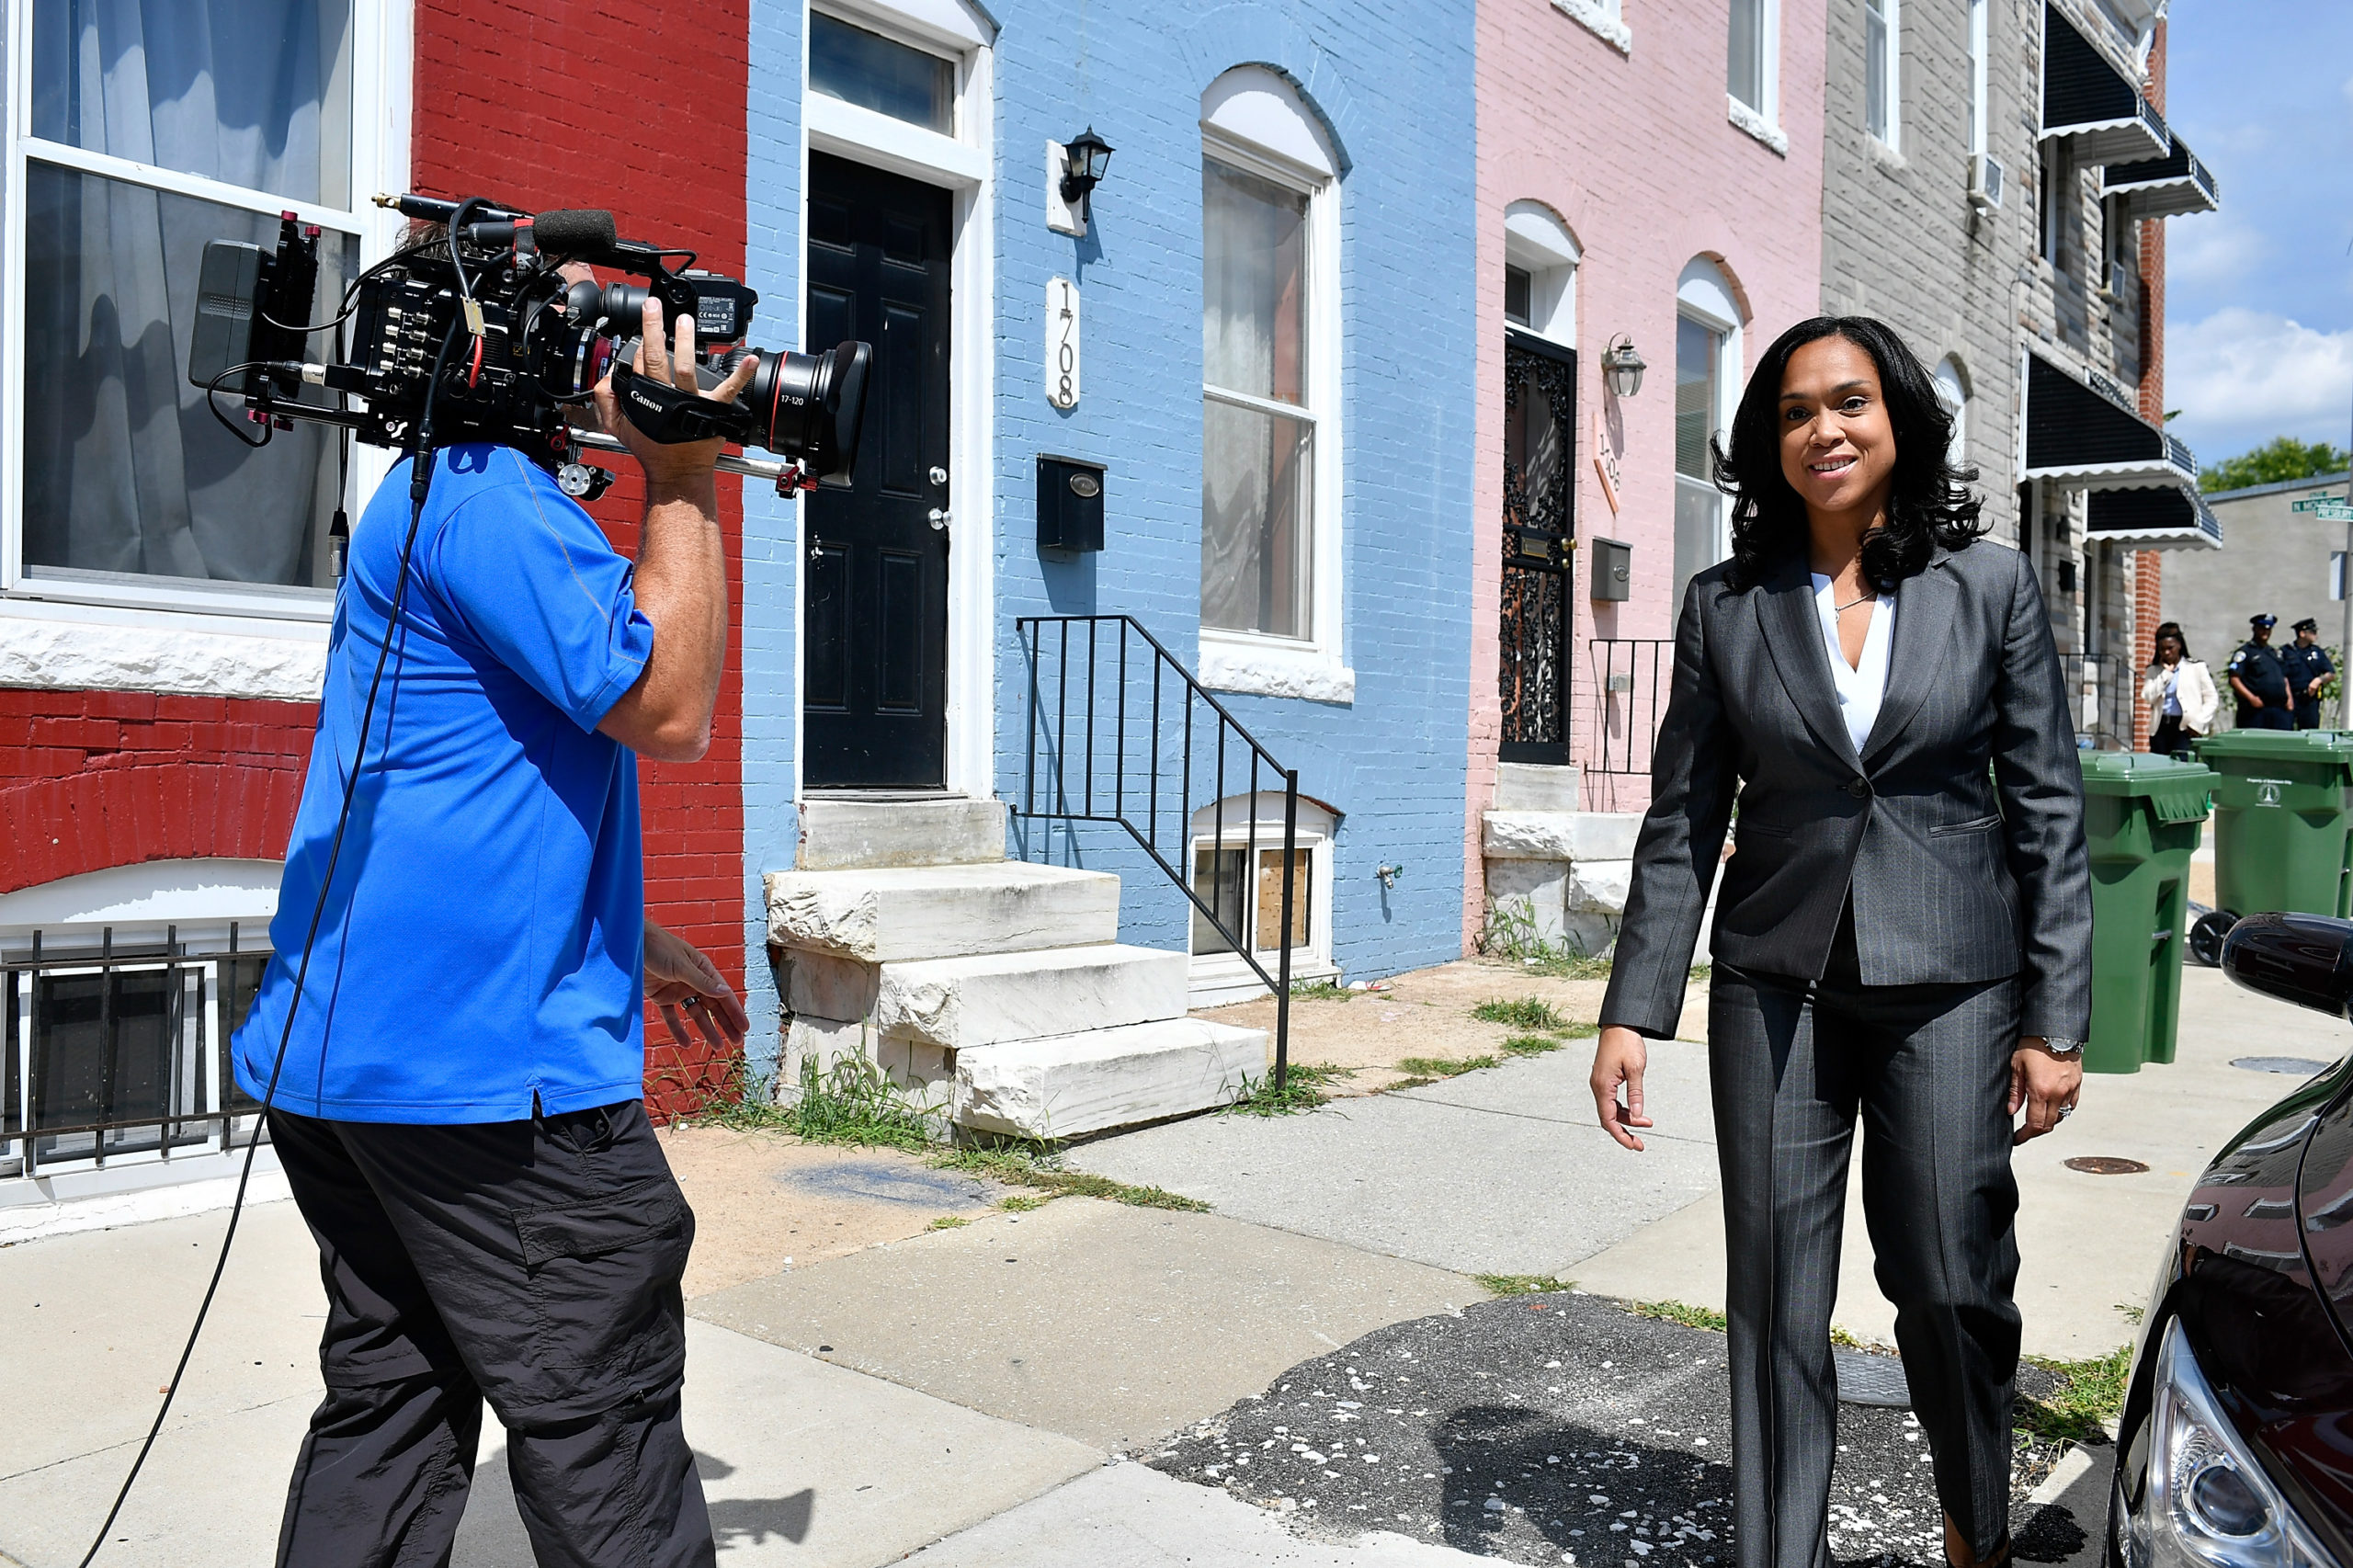 State's Attorney for Baltimore Marilyn Mosby is interviewed on Aug. 24, 2016 in Baltimore, Maryland. (Larry French/Getty Images for BET Networks)